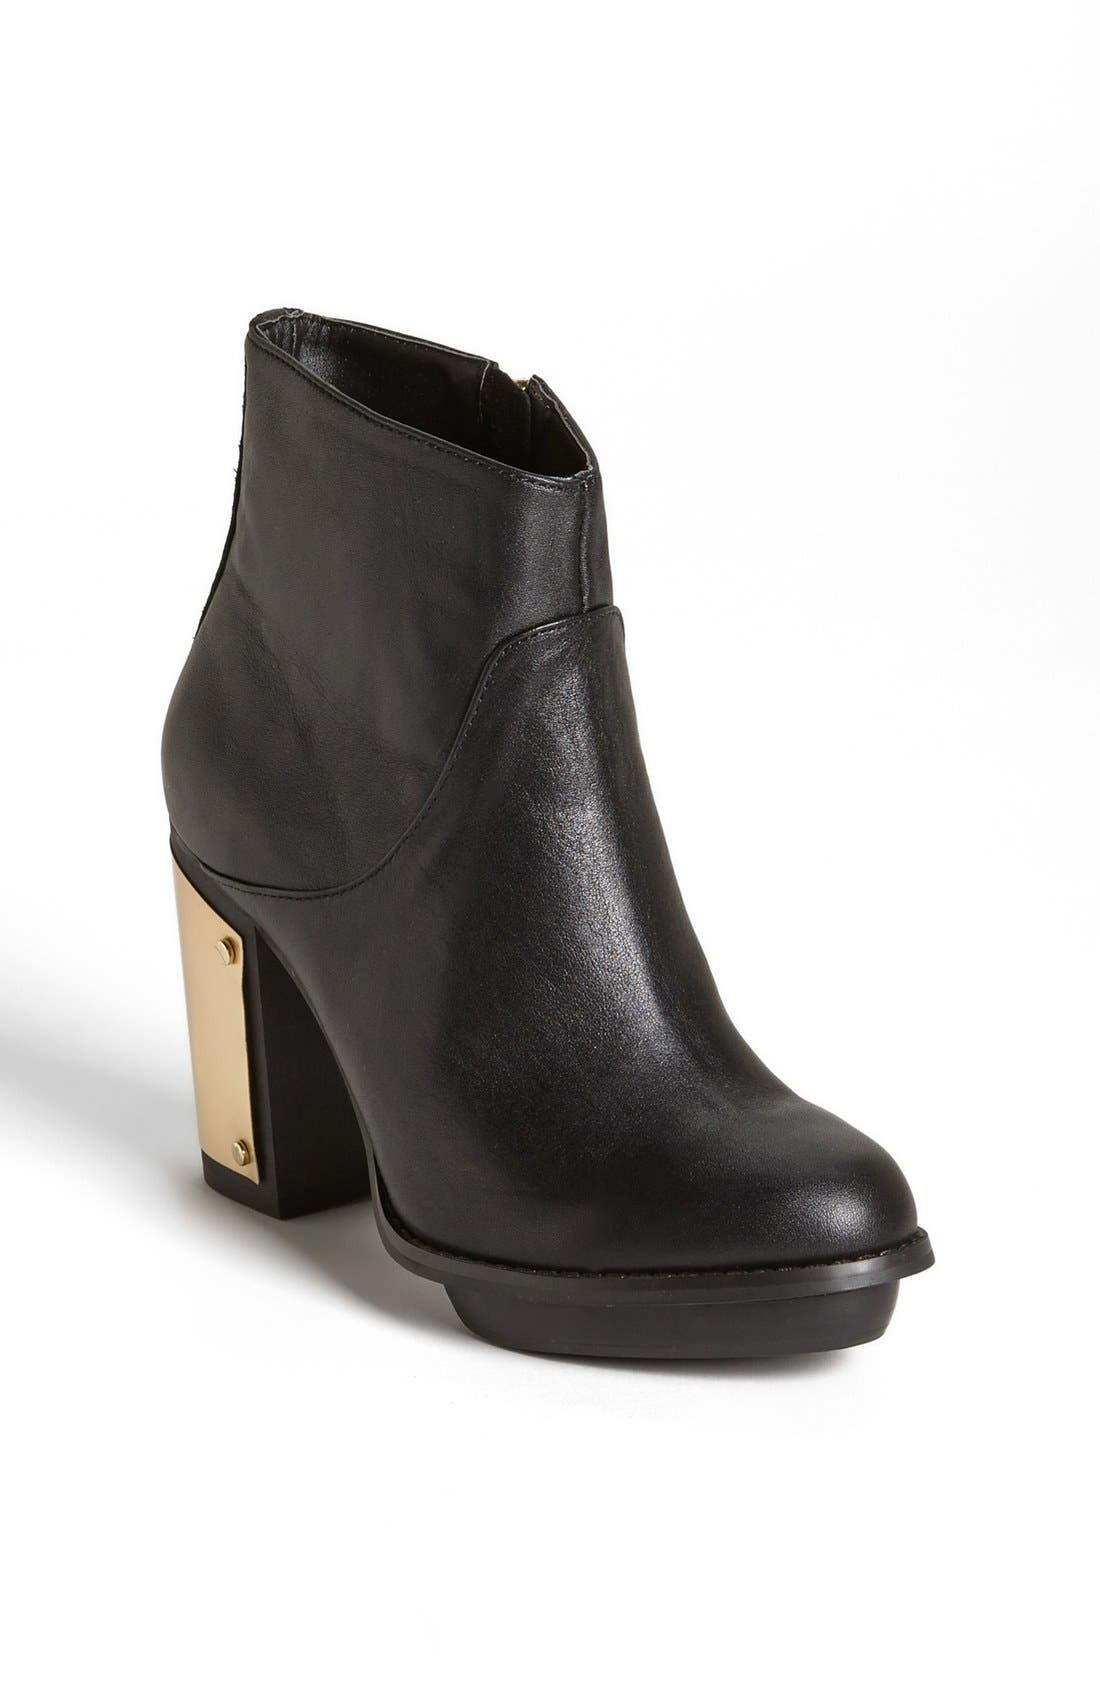 Alternate Image 1 Selected - Steve Madden 'Flight' Bootie